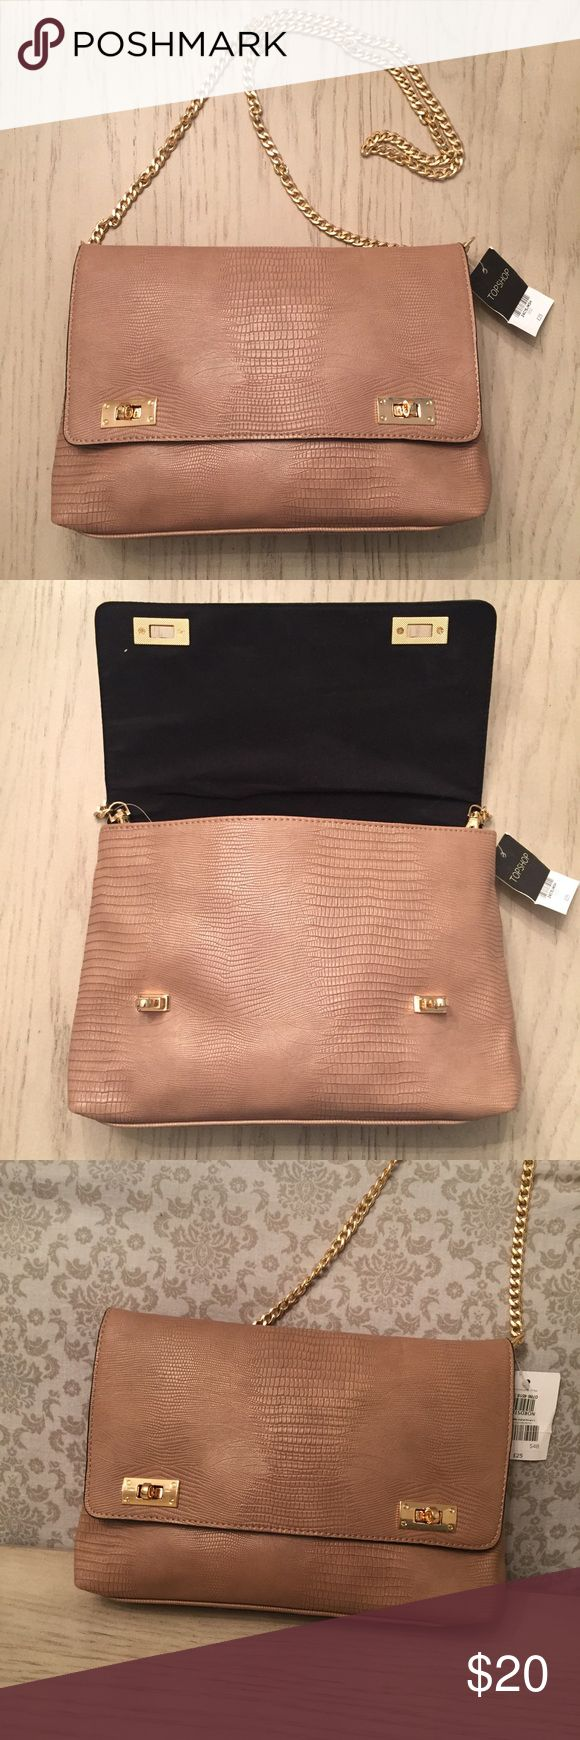 NWT topshop purse- Tan with gold chain and clasps This TOPSHOP purse, purchased at Nordstrom is NWT, sophisticated and adorable.  Black interior. Simple and chic, slightly larger than a clutch. Topshop Bags